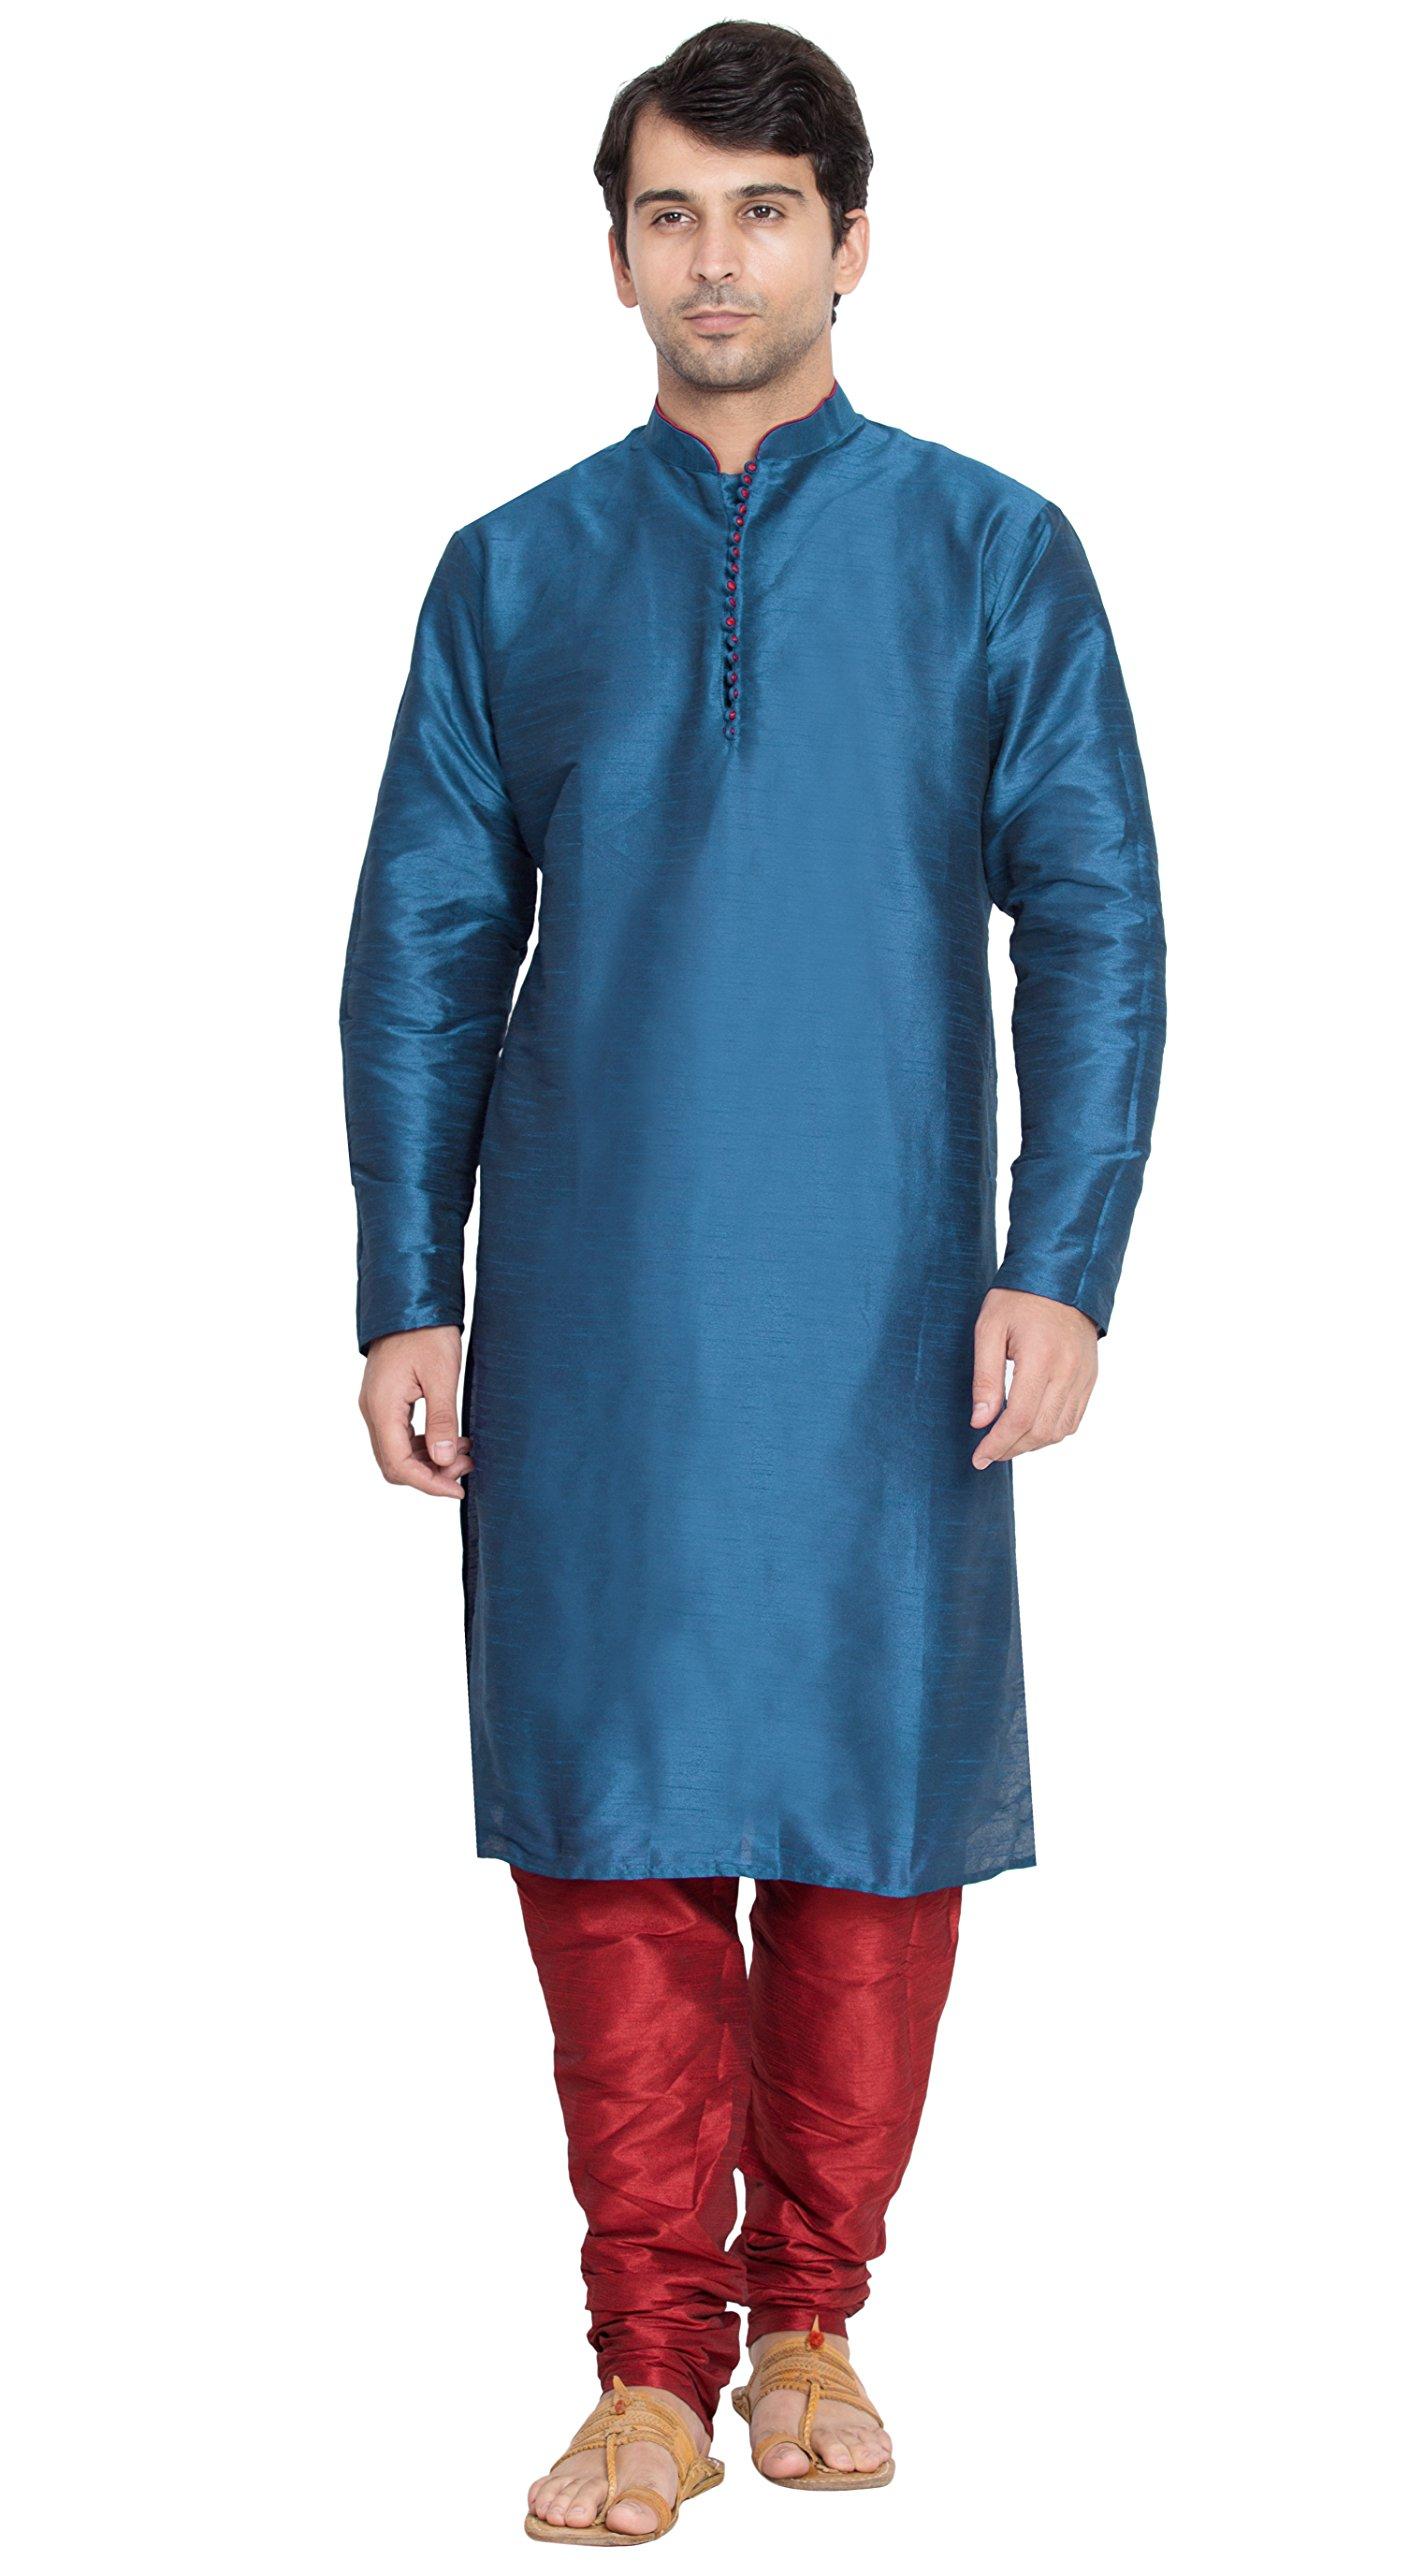 Indian Kurta Pajama Handmade Long Sleeve Shirt Traditional Turquoise Summer Dress -L